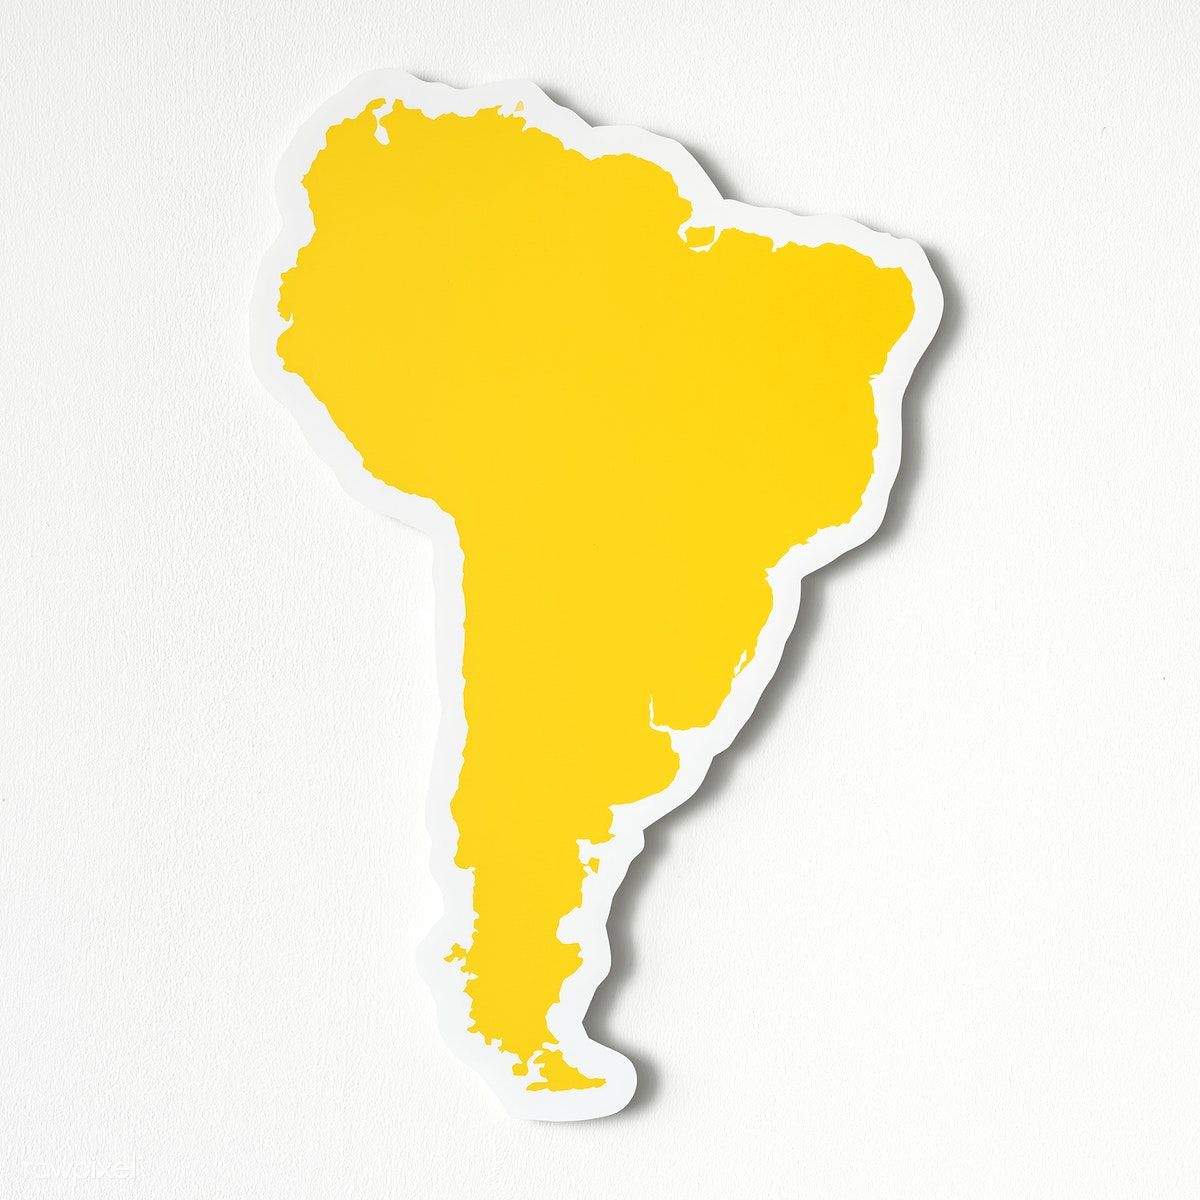 Blank map of South America   Free stock photo - 402540